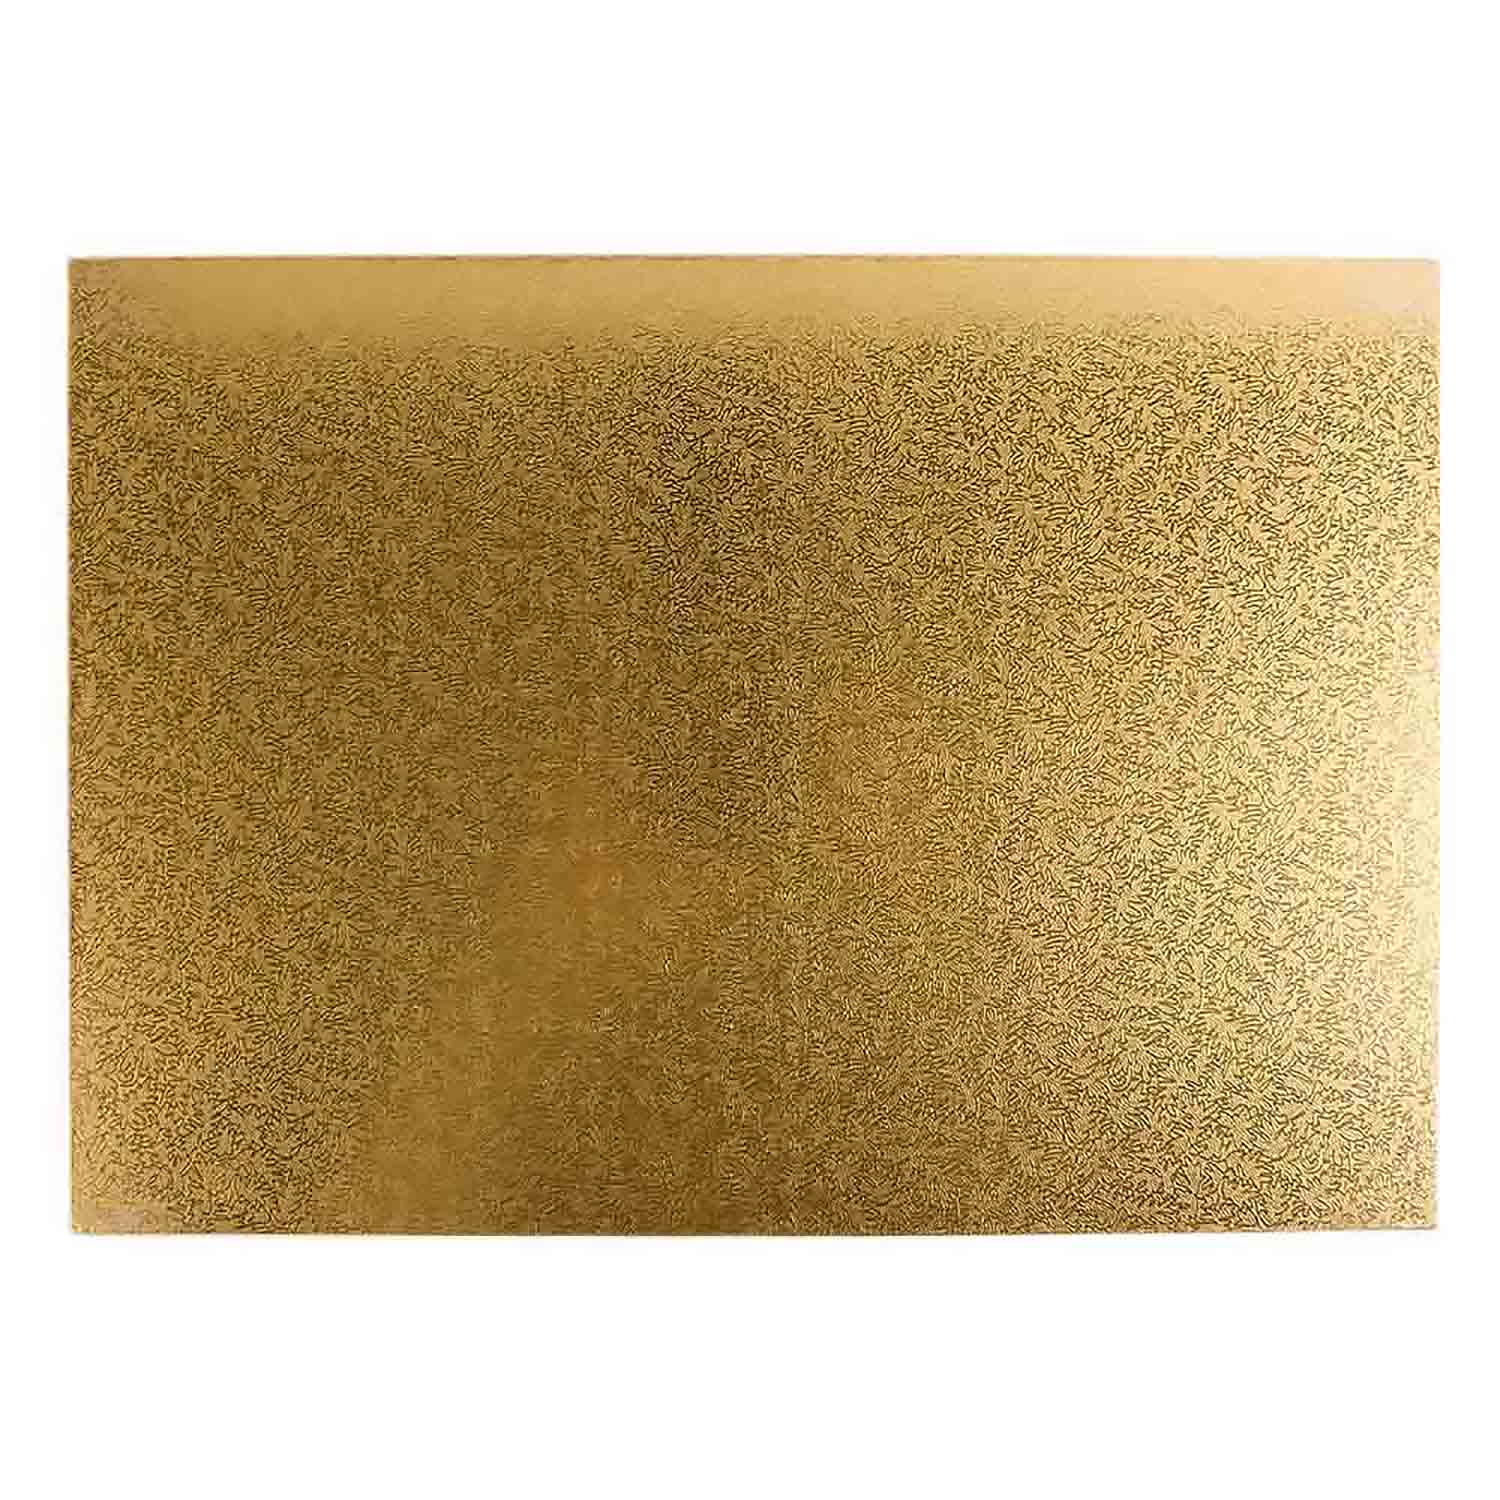 Quarter Sheet Gold Foil Sturdy Board